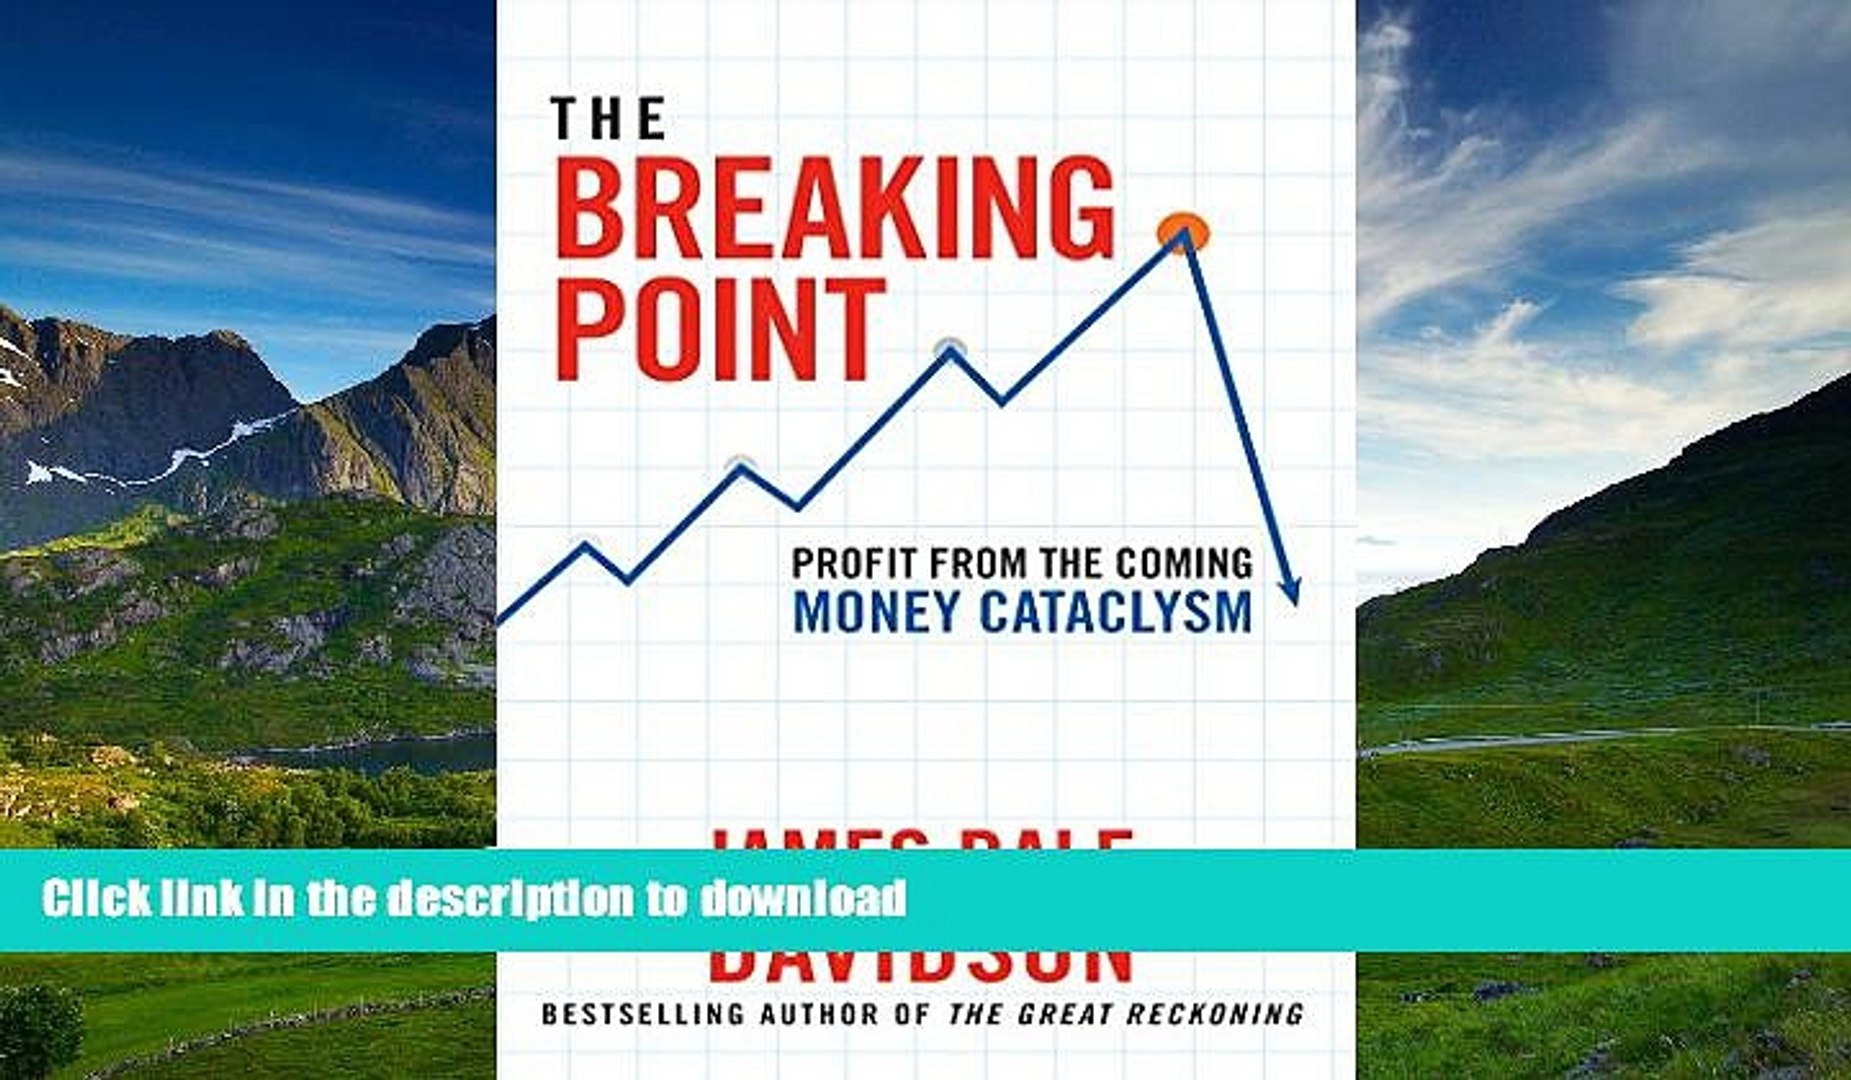 The Breaking Point Profit from the Coming Money Cataclysm